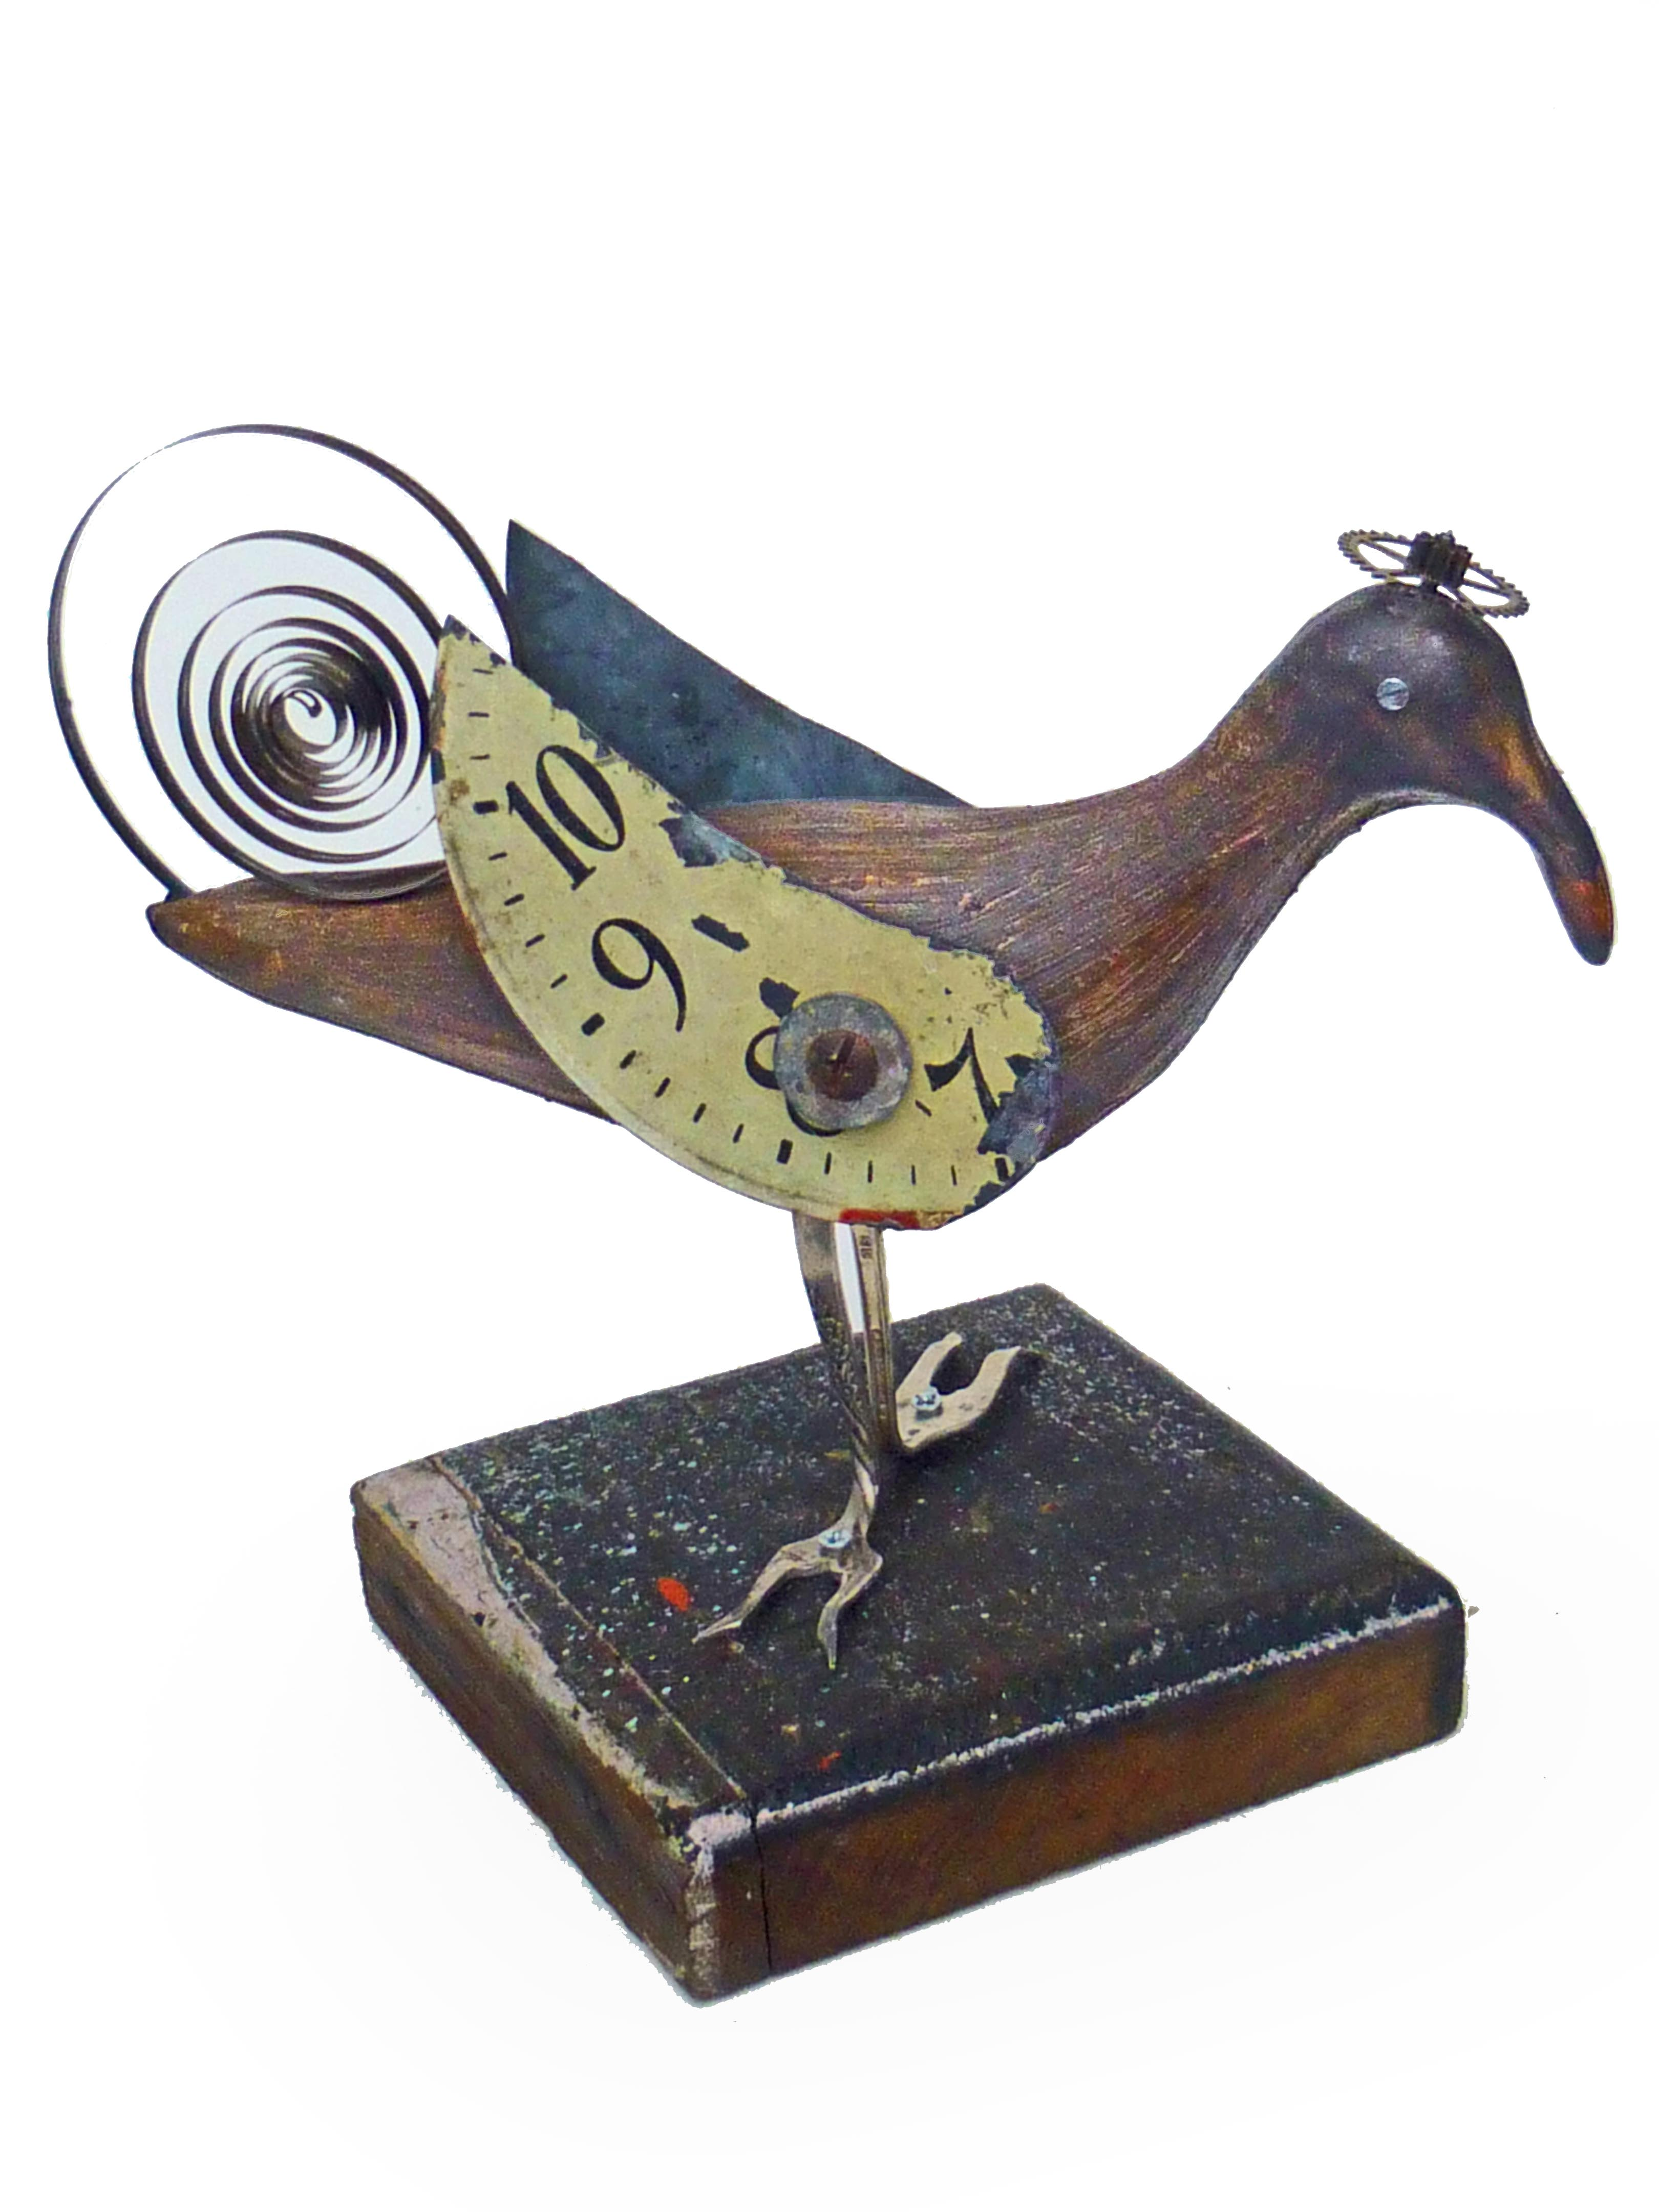 Like Clockwork Bird - Ceramic/Found Objects